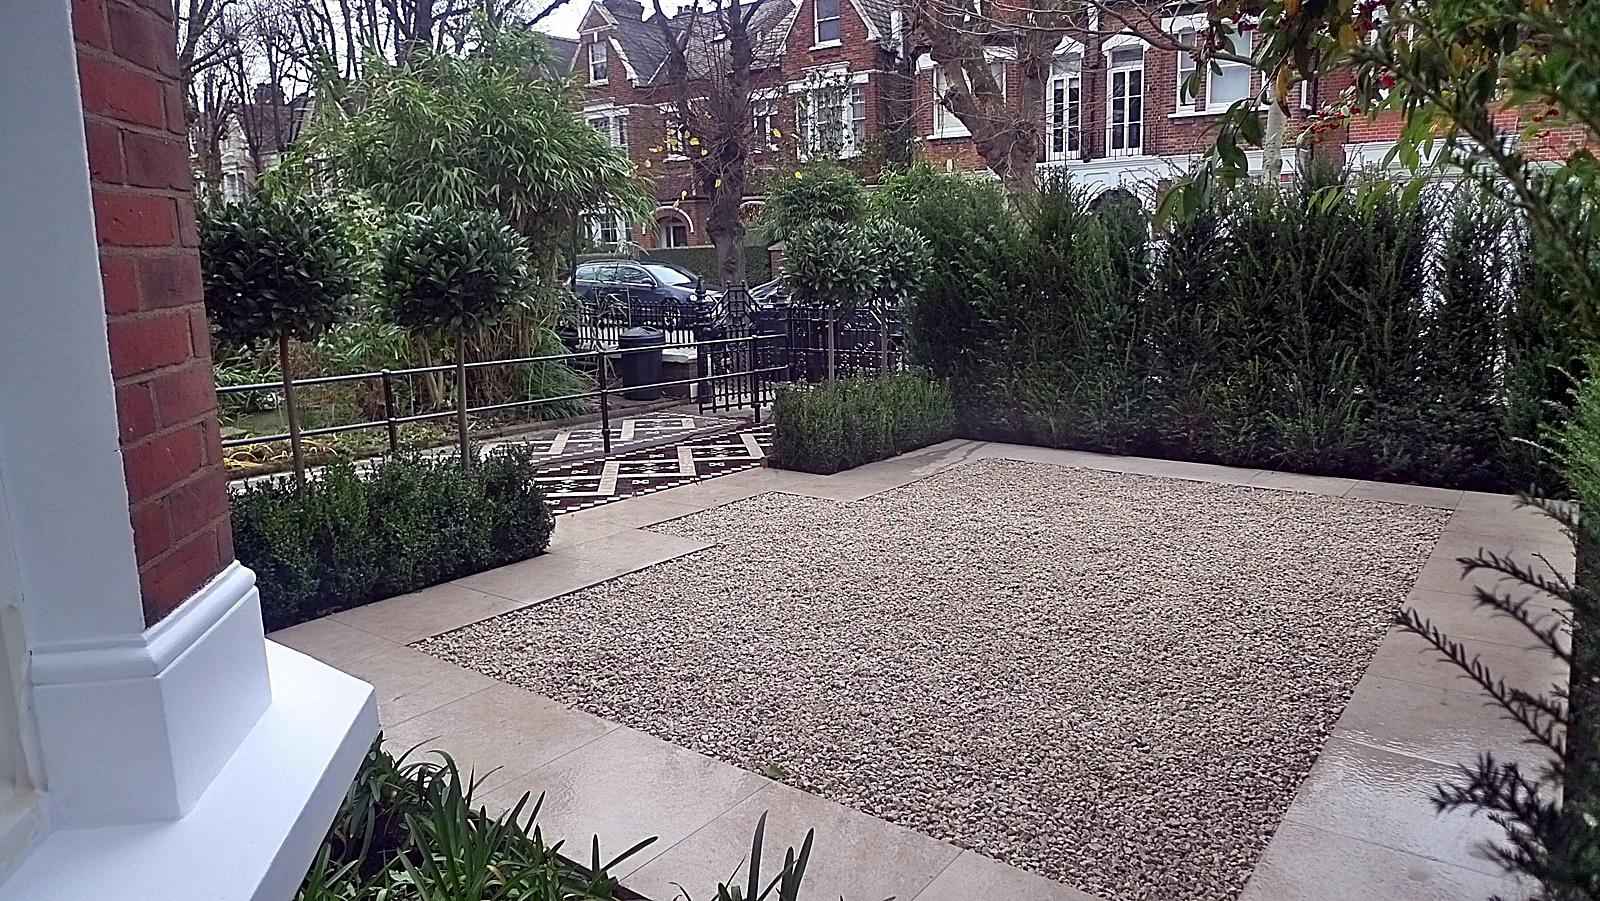 London garden design garden design for Small modern garden design ideas